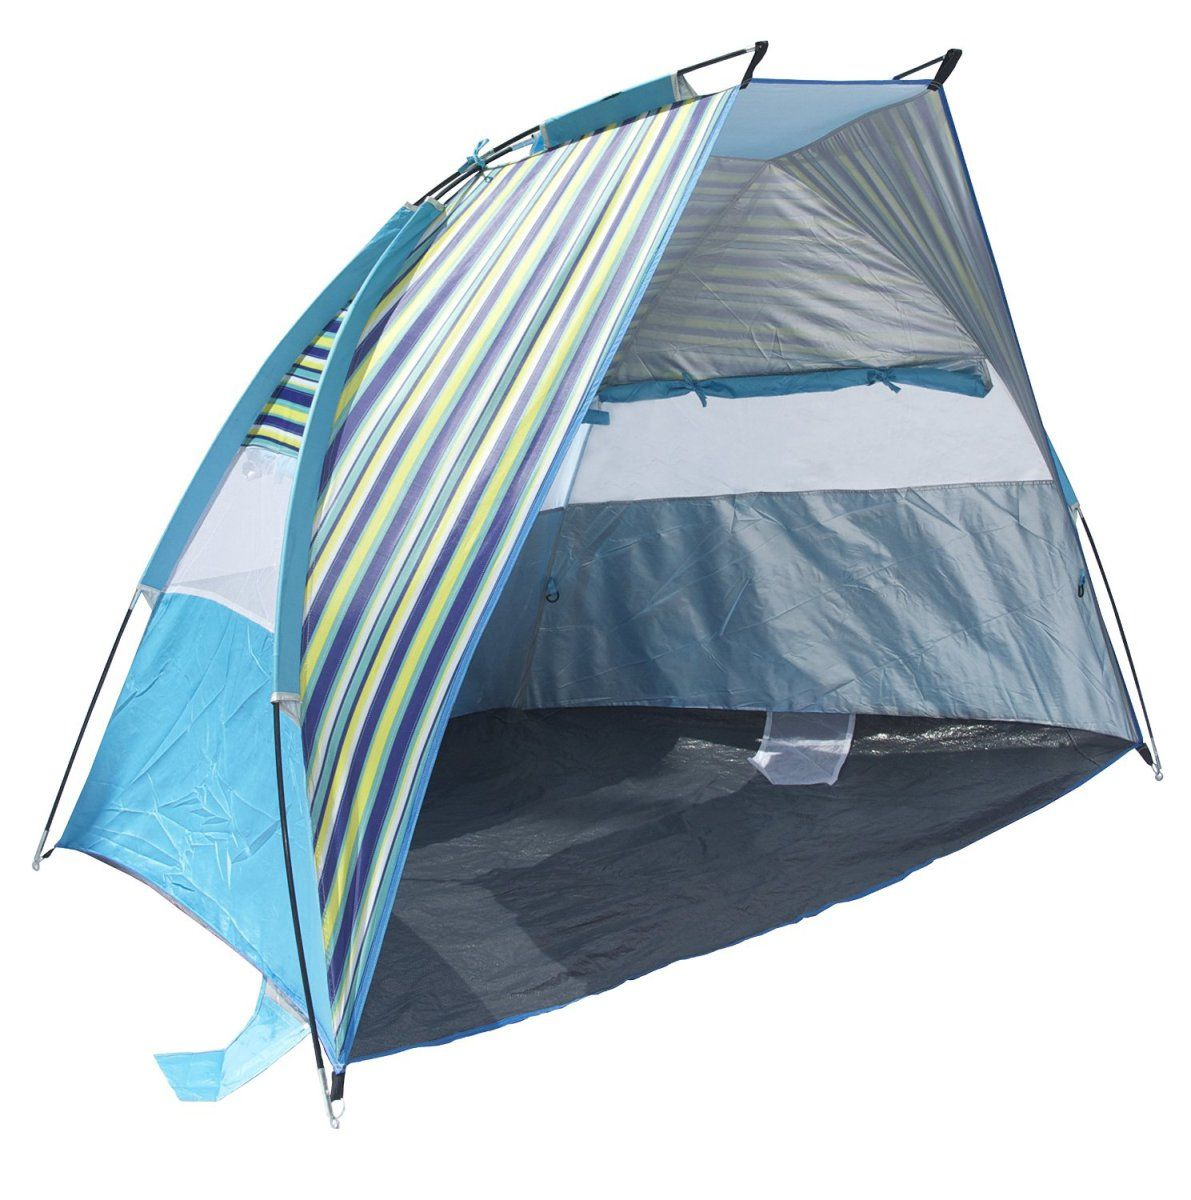 Easy to use pop up beach tent u2013 comes with sandbags for increased stability in sea  sc 1 st  Pinterest & Easy to use pop up beach tent u2013 comes with sandbags for increased ...